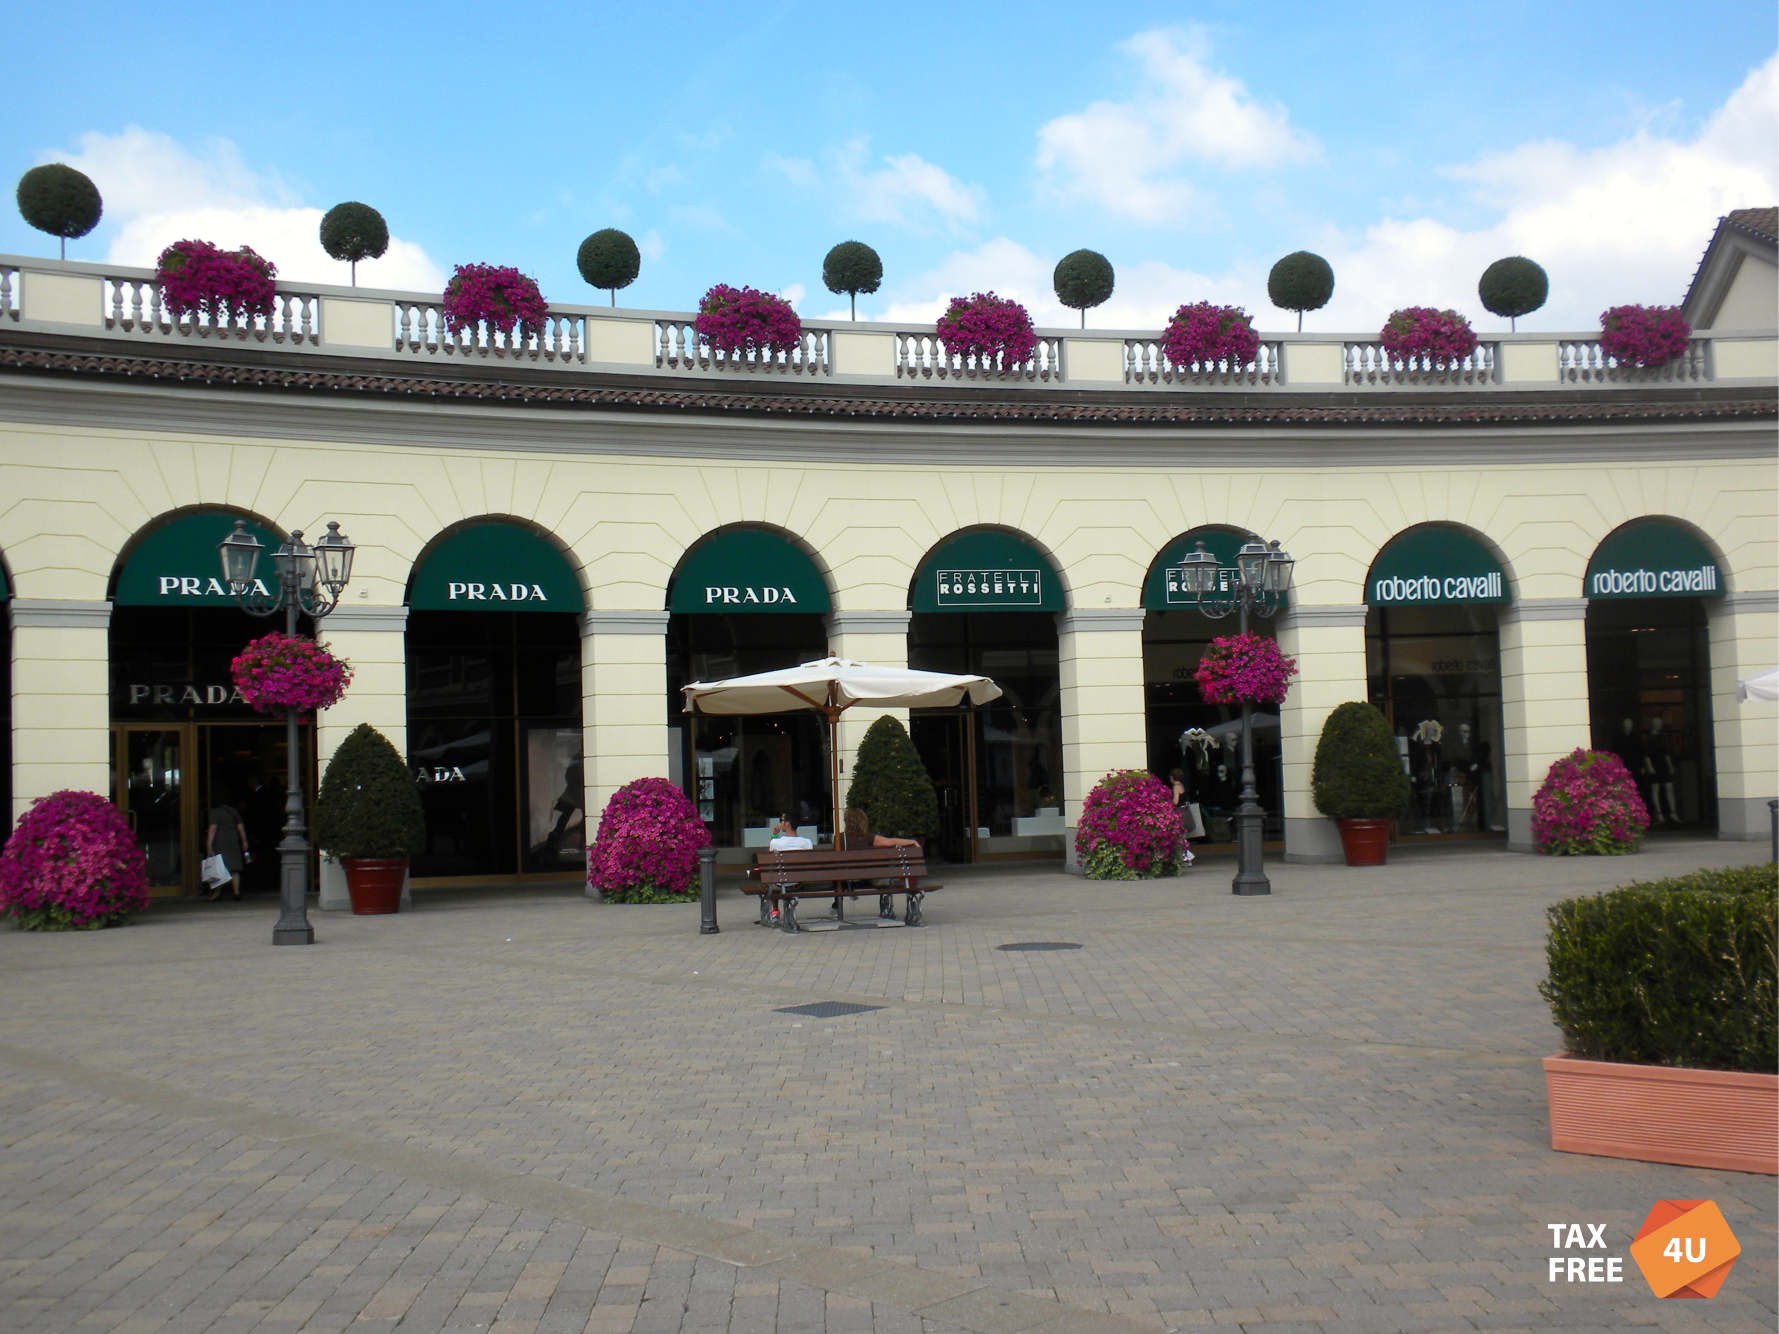 075edd7a6c Serravalle Designer Outlet (Via della Moda 1, Serravalle Scrivia, AL) – a  real paradise for outdoor enthusiasts – there are more than 160 boutiques  on its ...